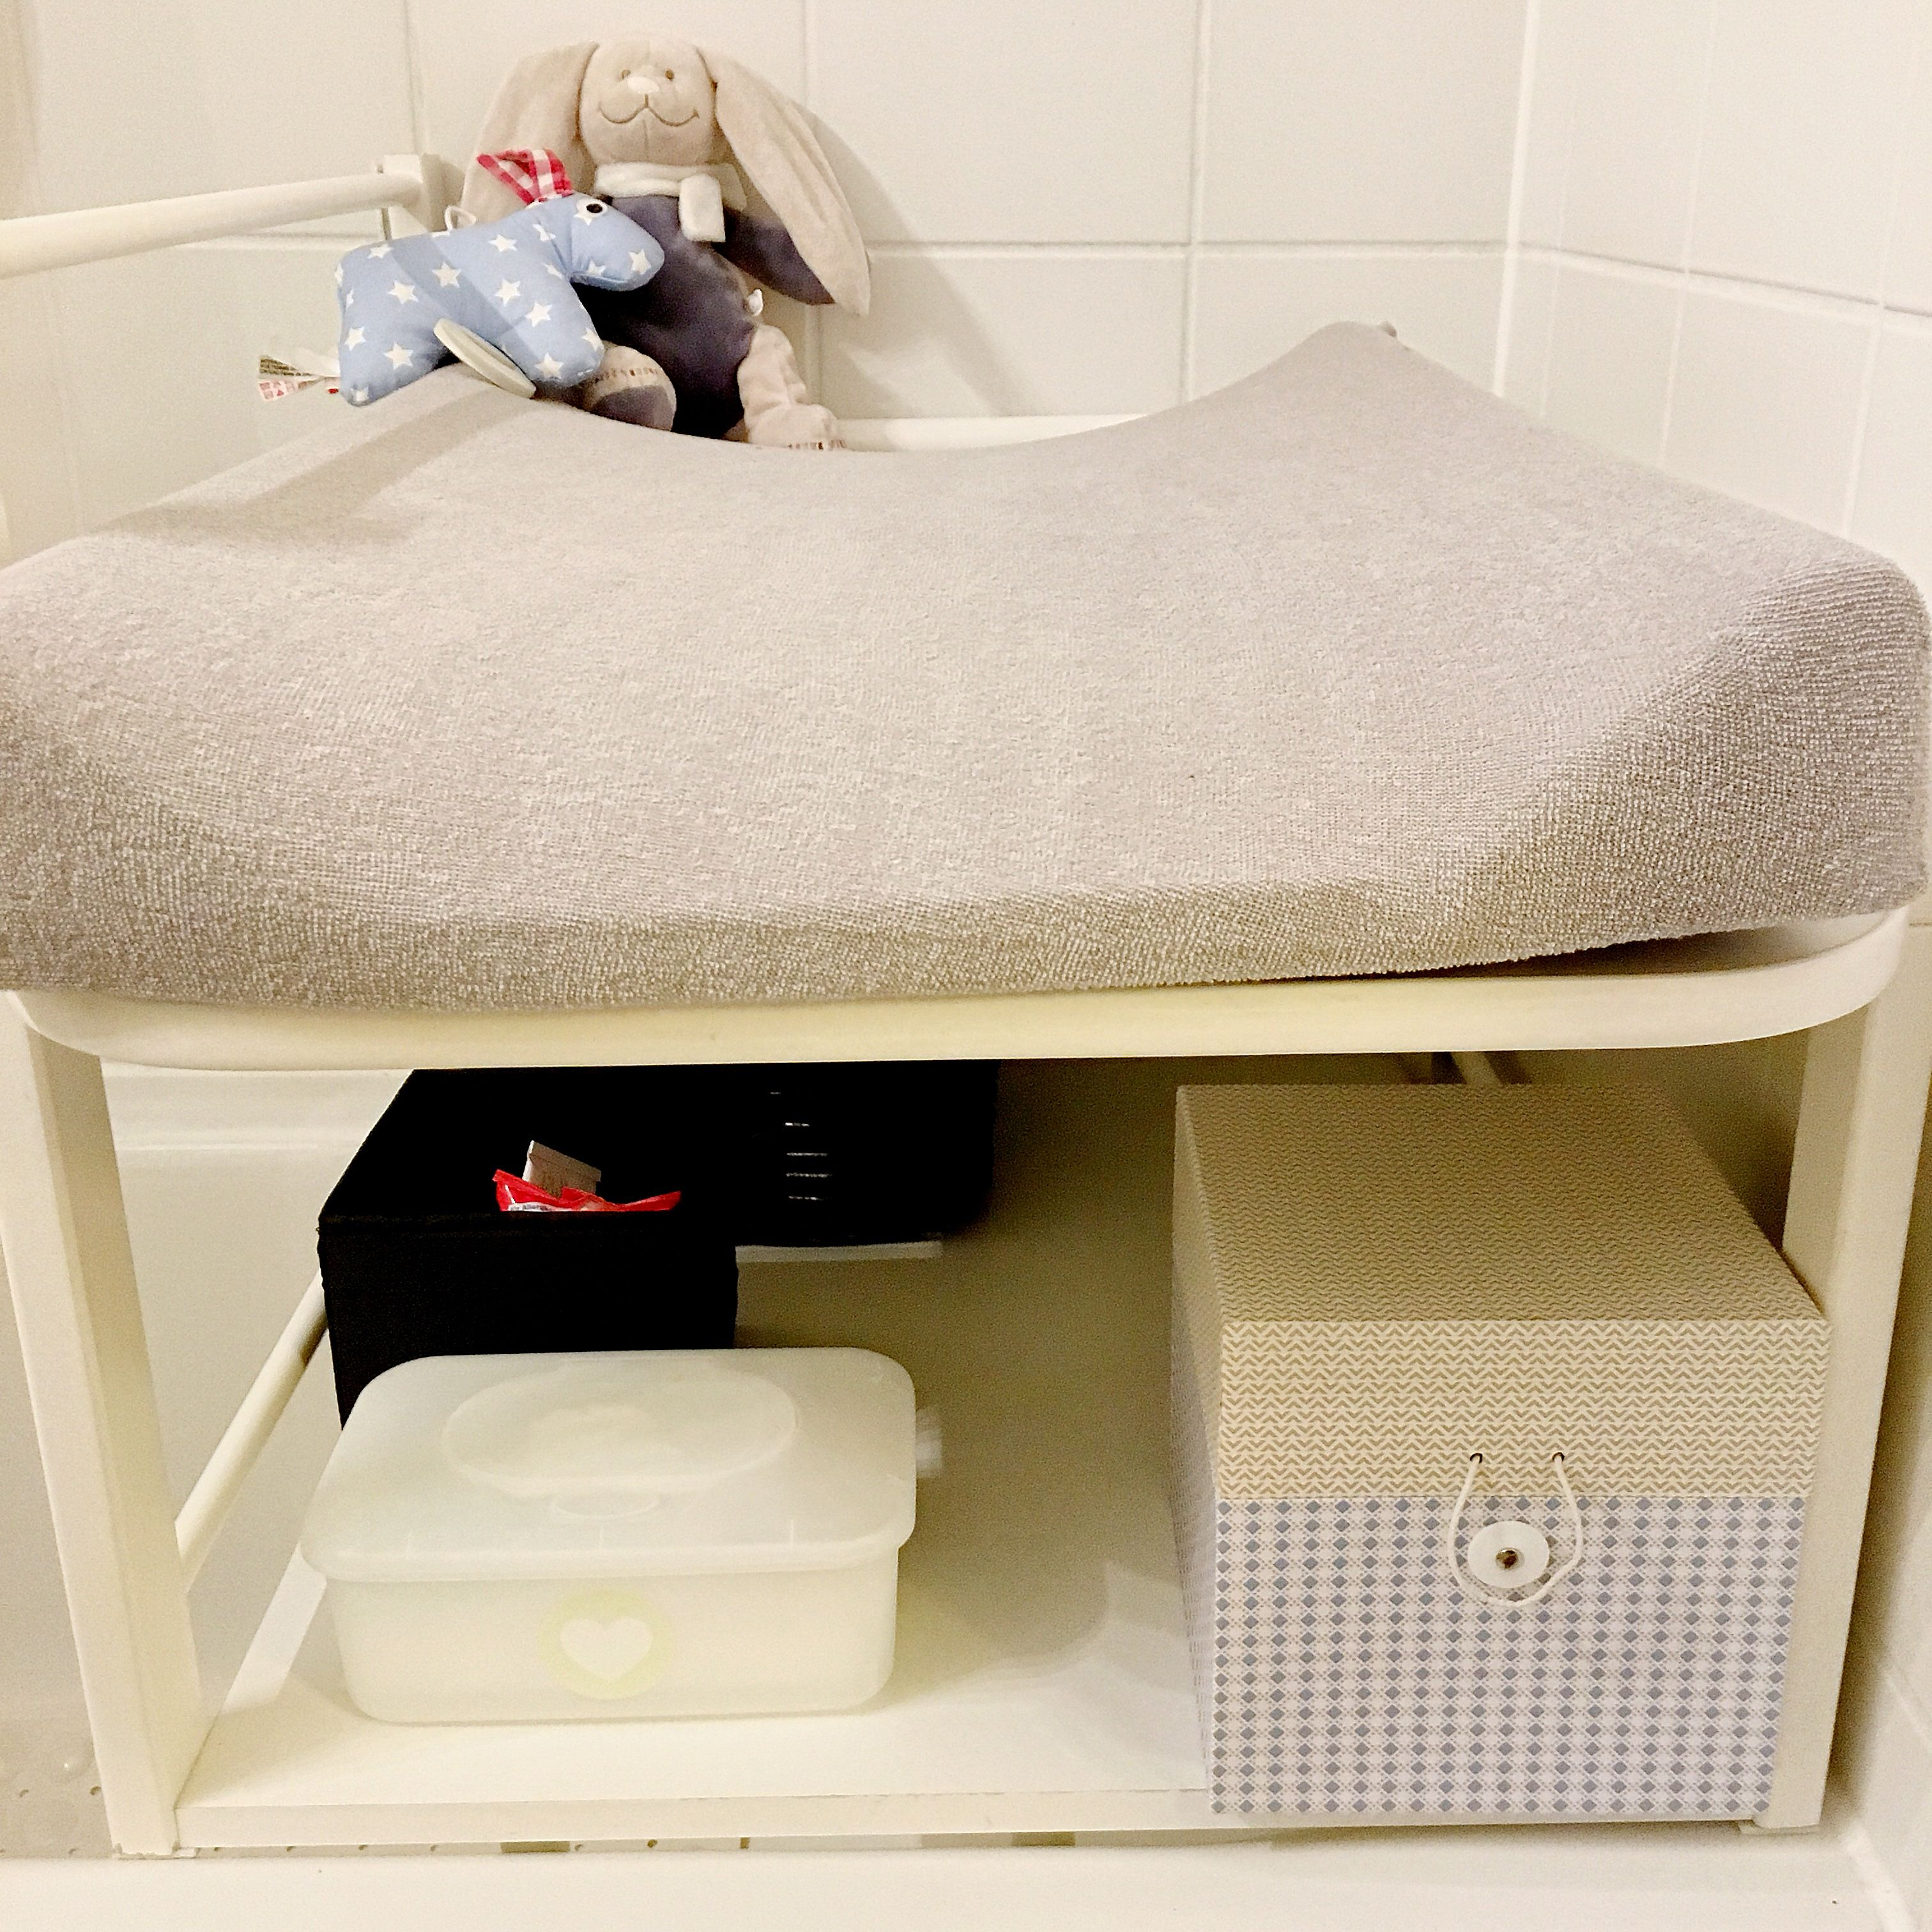 Diy Changing Table For The Bathroom Perfect Small Places